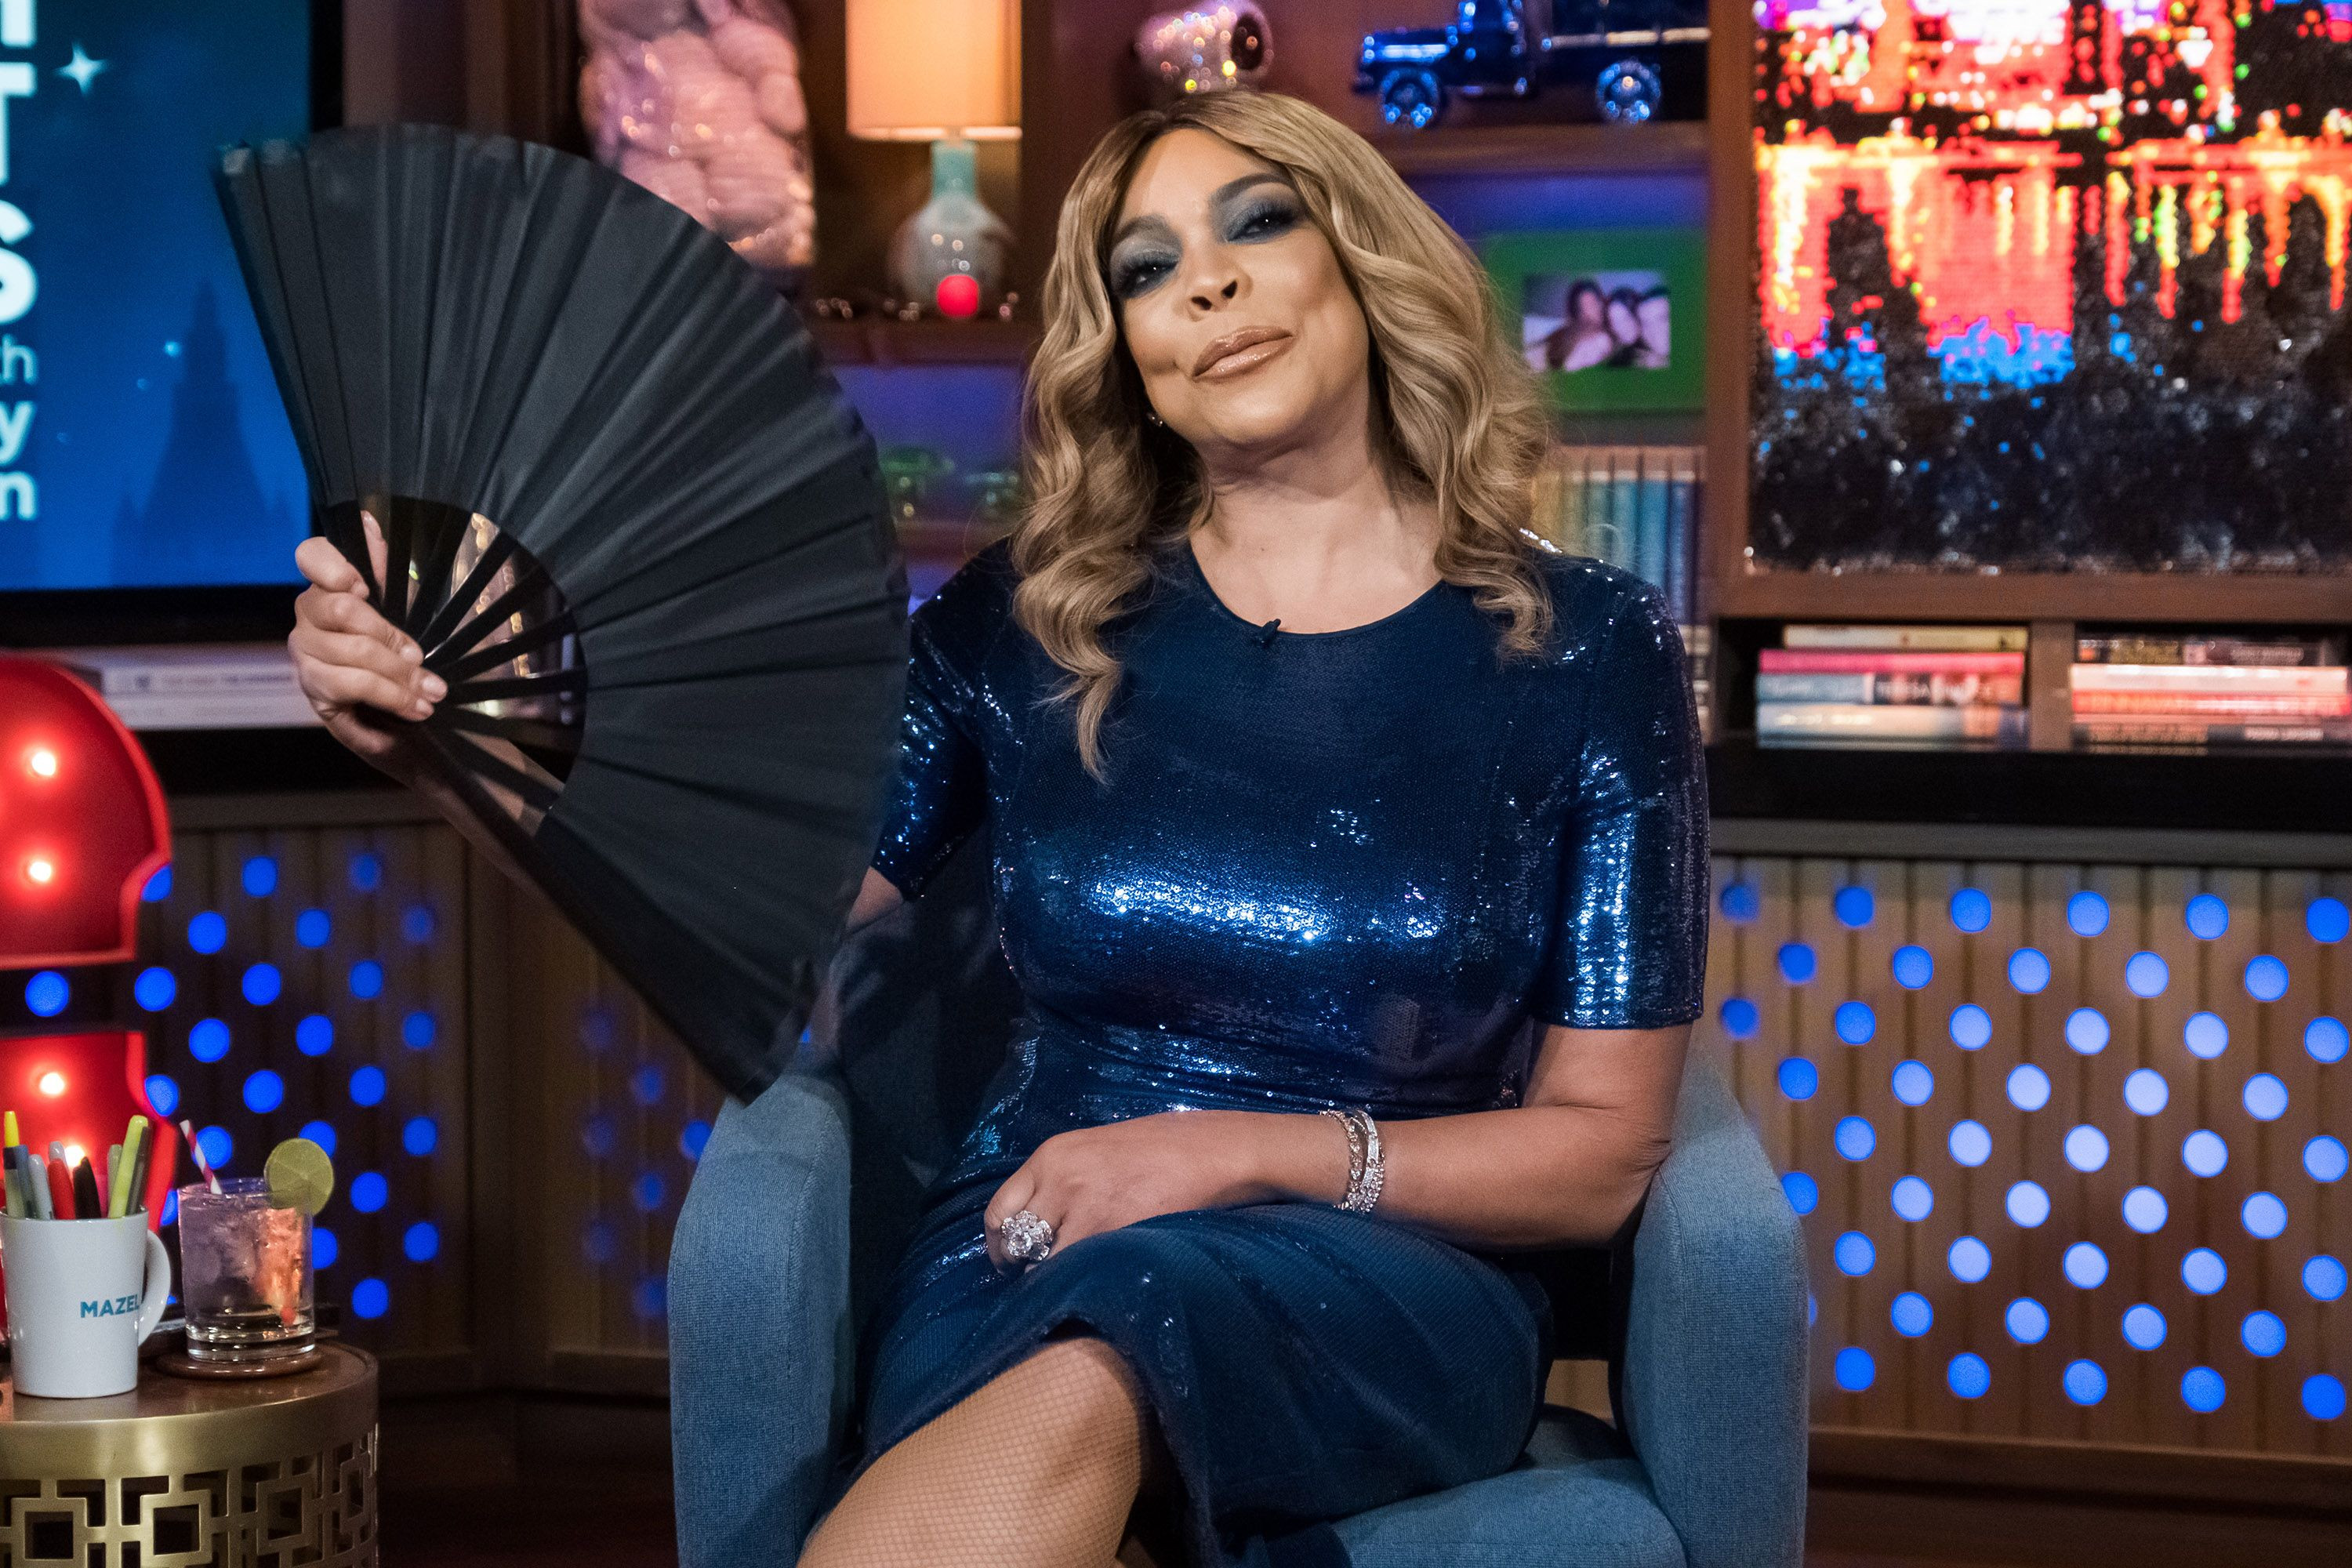 Tearful Wendy Williams apologizes for saying gay men shouldn